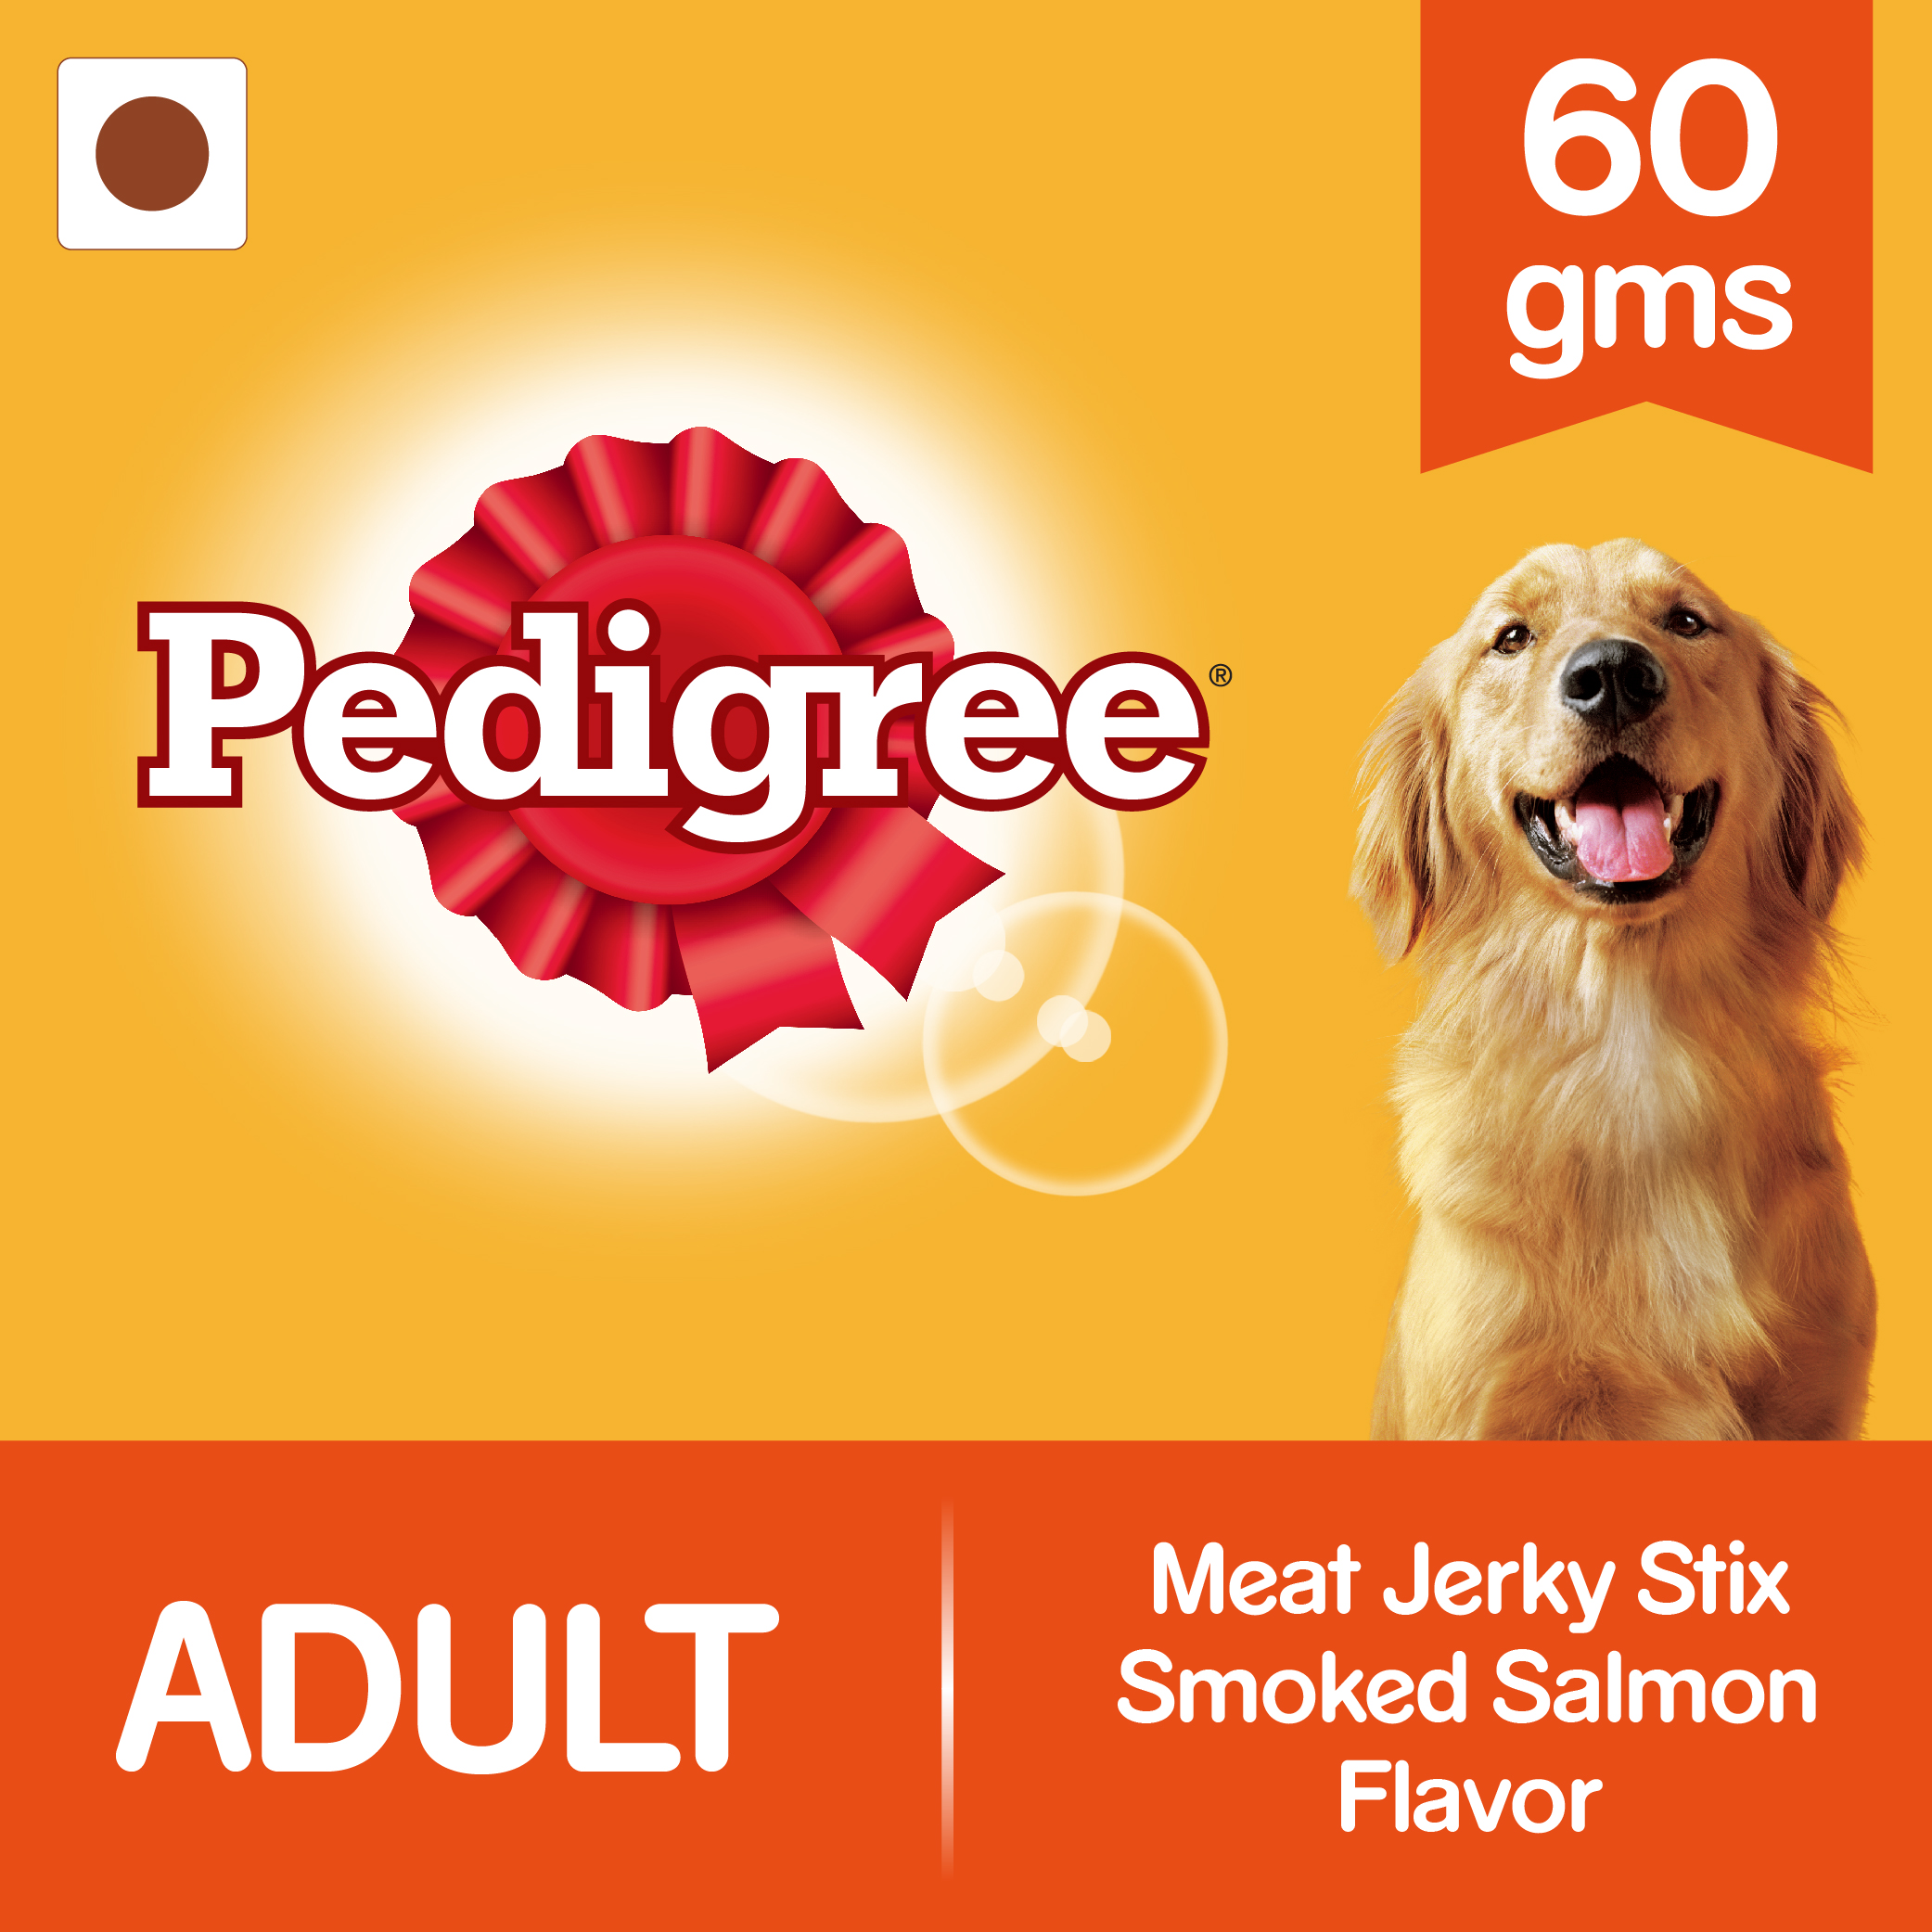 Pedigree Meat Jerky Stix Grilled Smoked Salmon Flavor - 60 gm (Pack of 12)